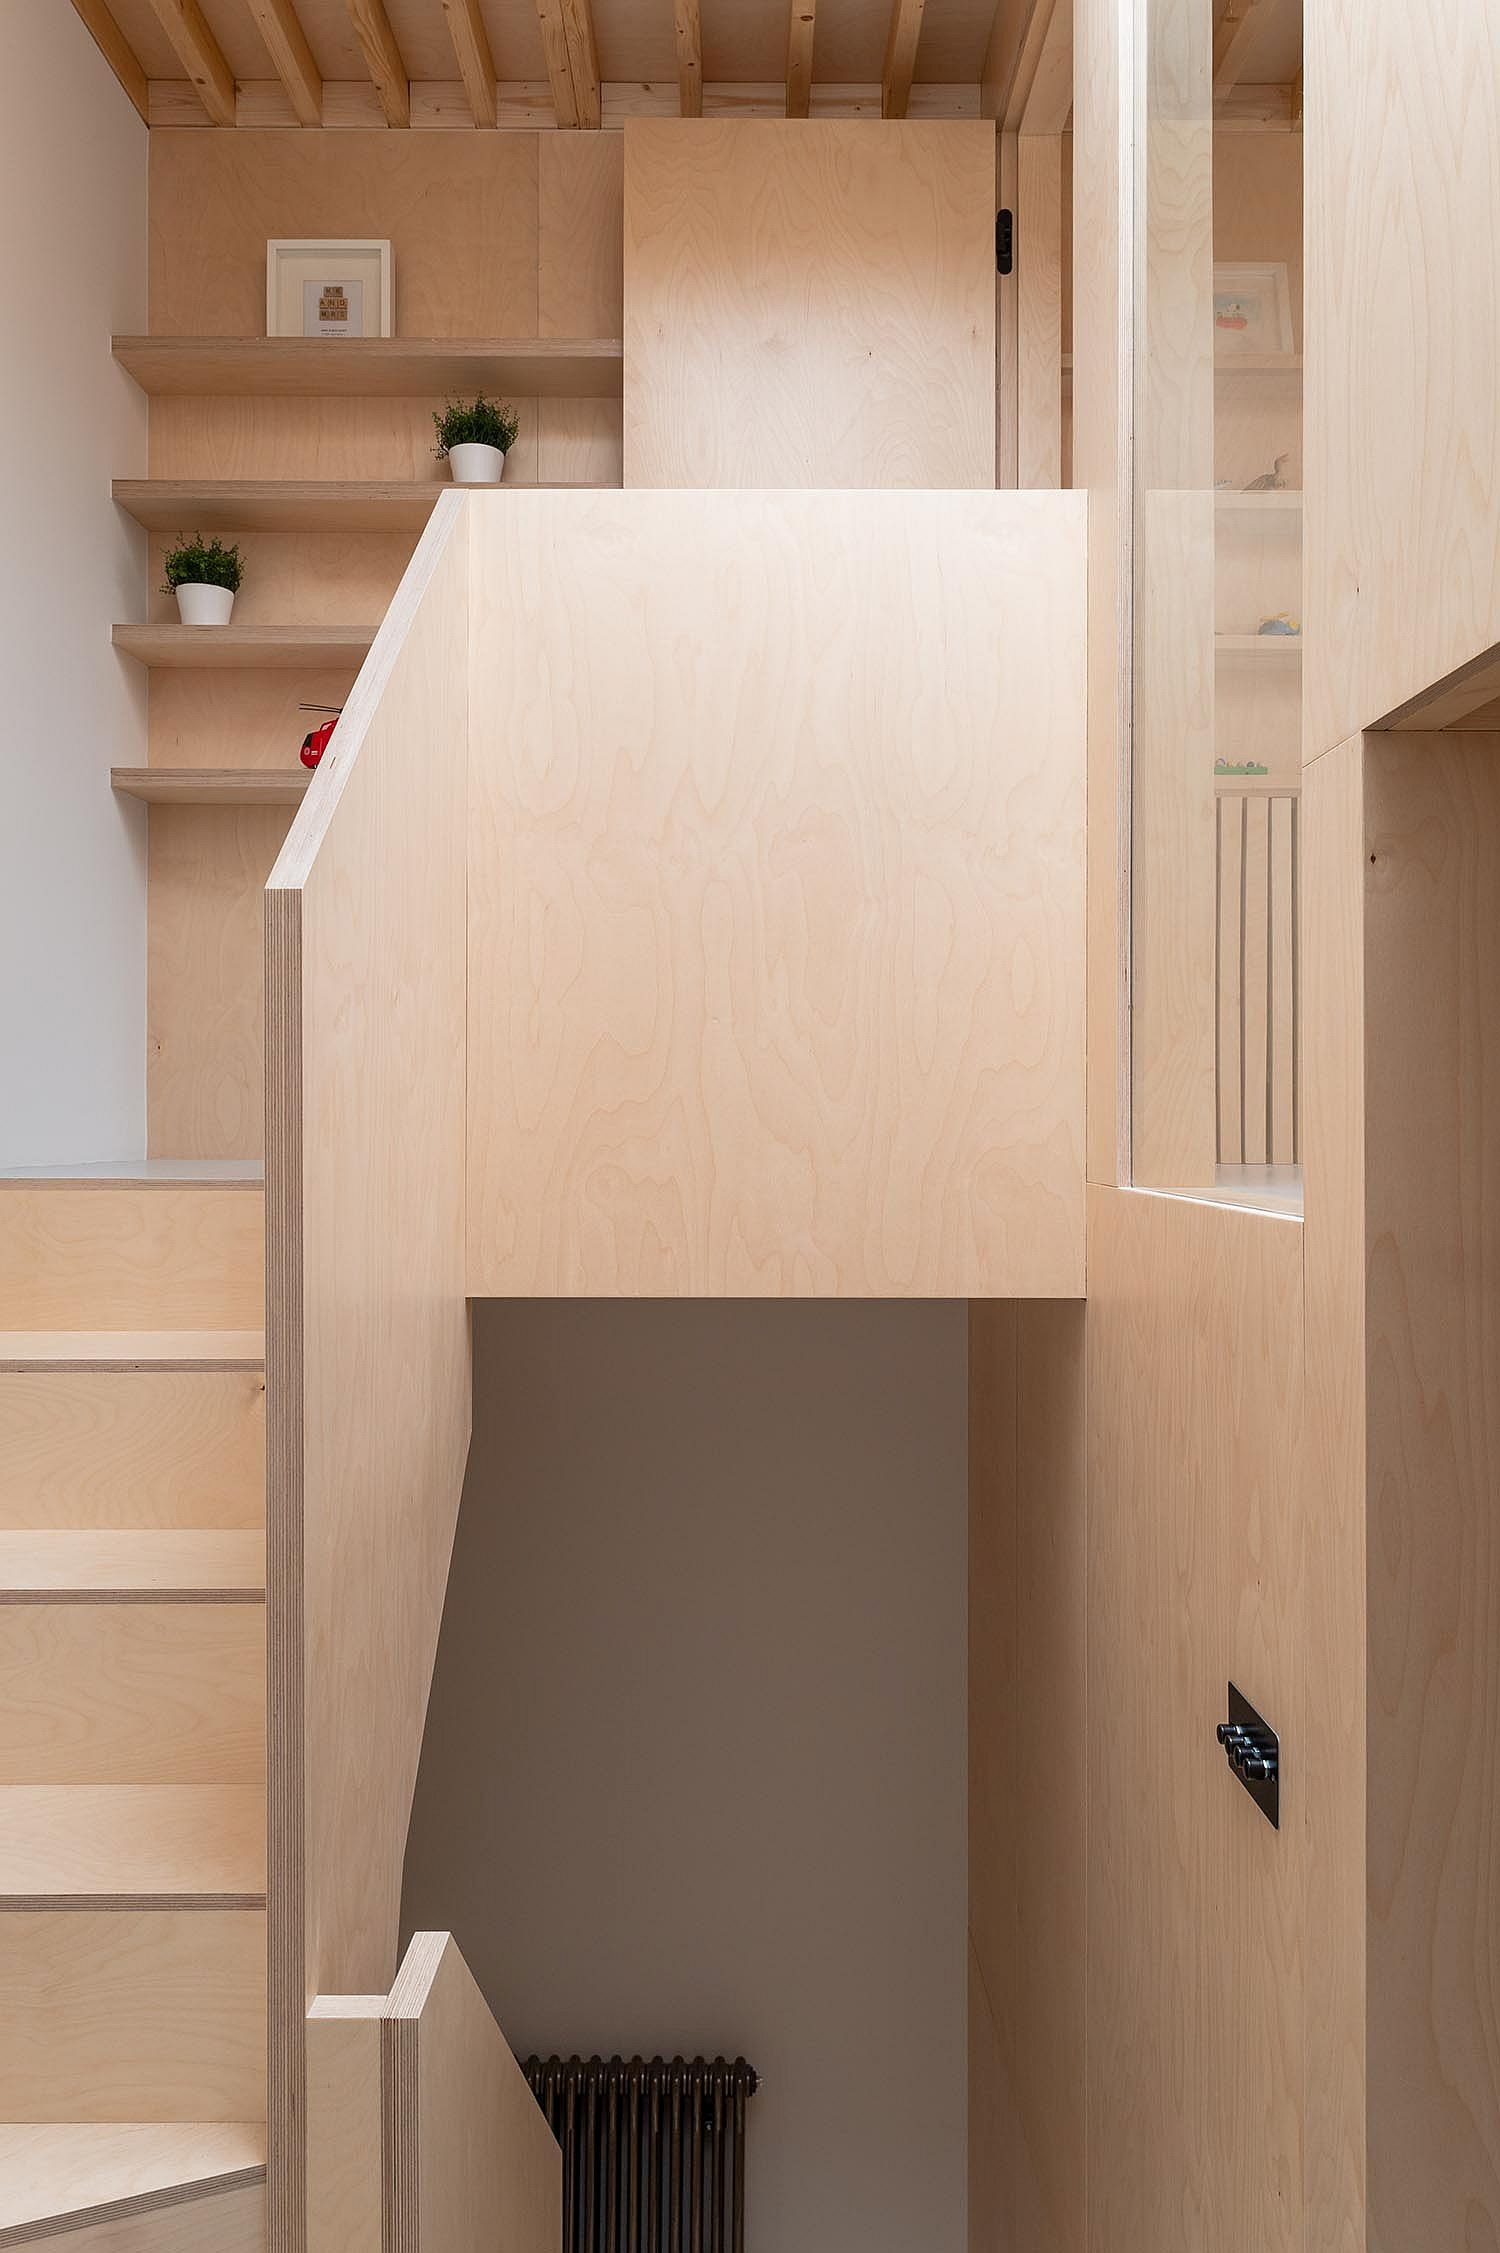 Plywood-clad-walls-and-staircase-completely-alter-the-interior-of-the-this-London-home-33099